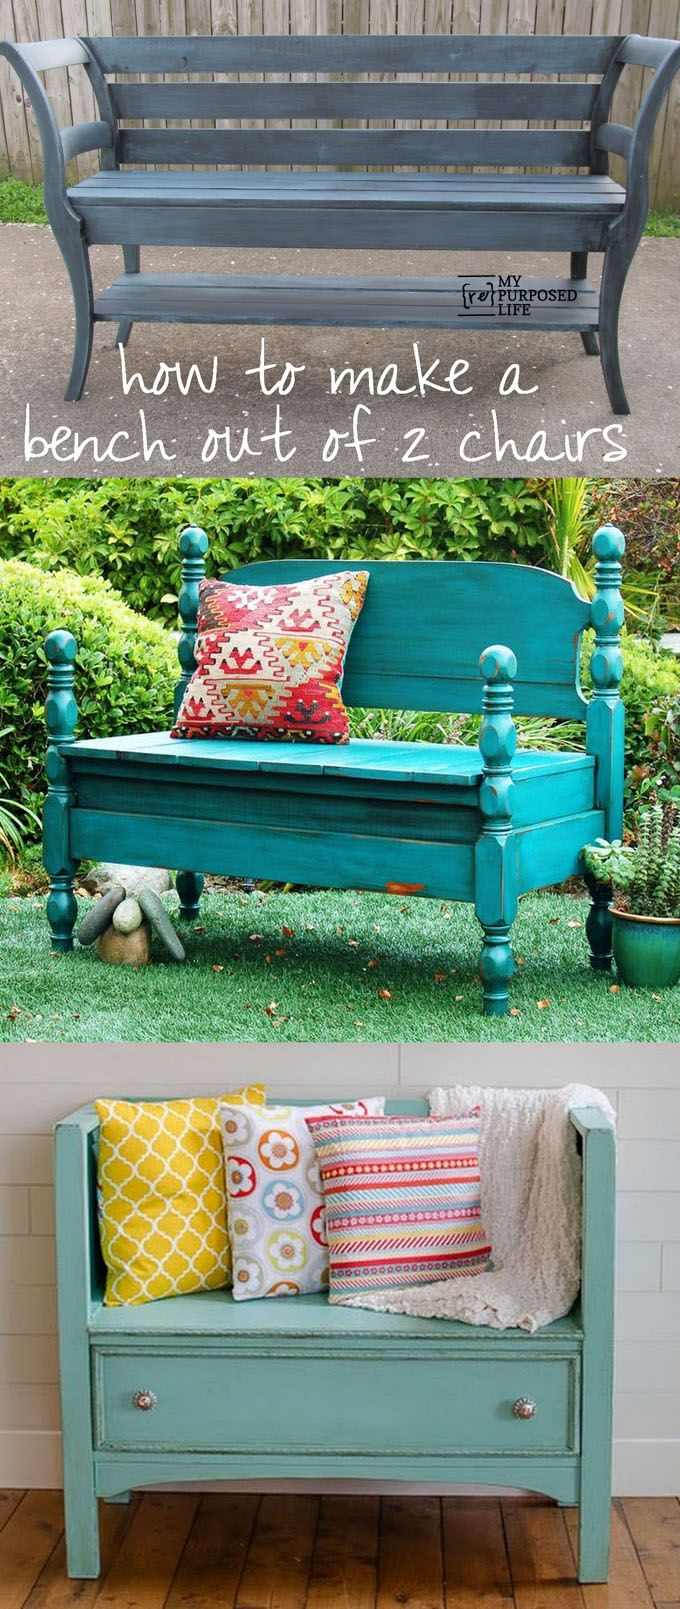 21 beautiful DIY benches for every room. Great tutorials on how to build benches...